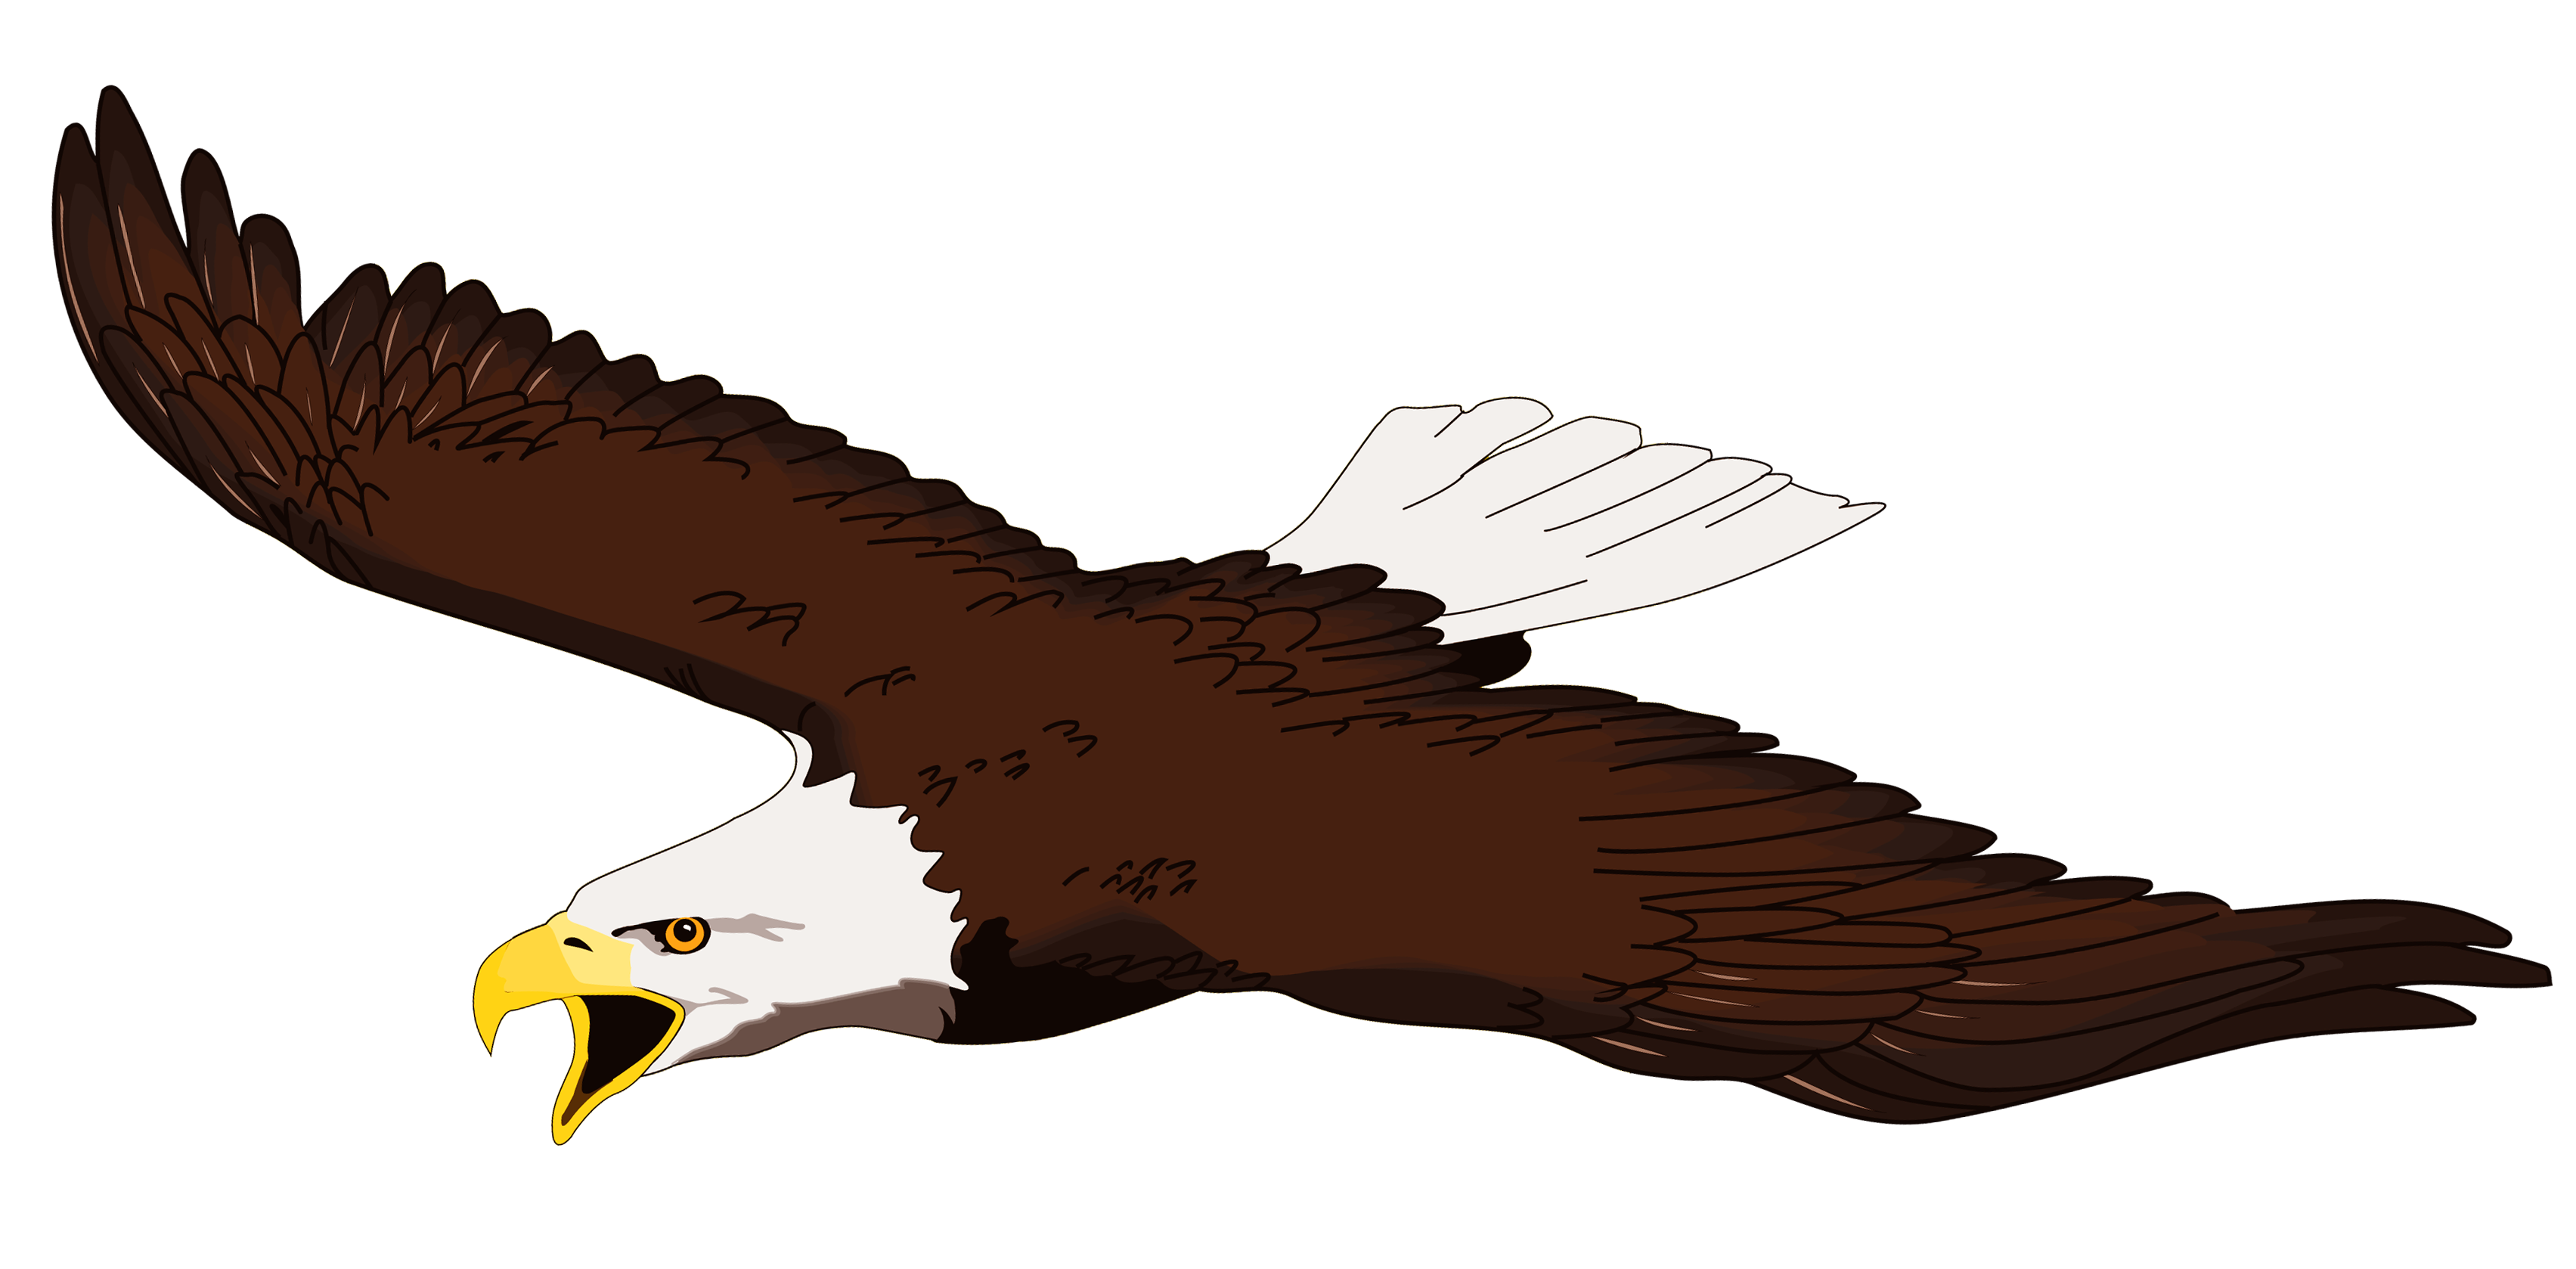 Soaring clipart #2, Download drawings